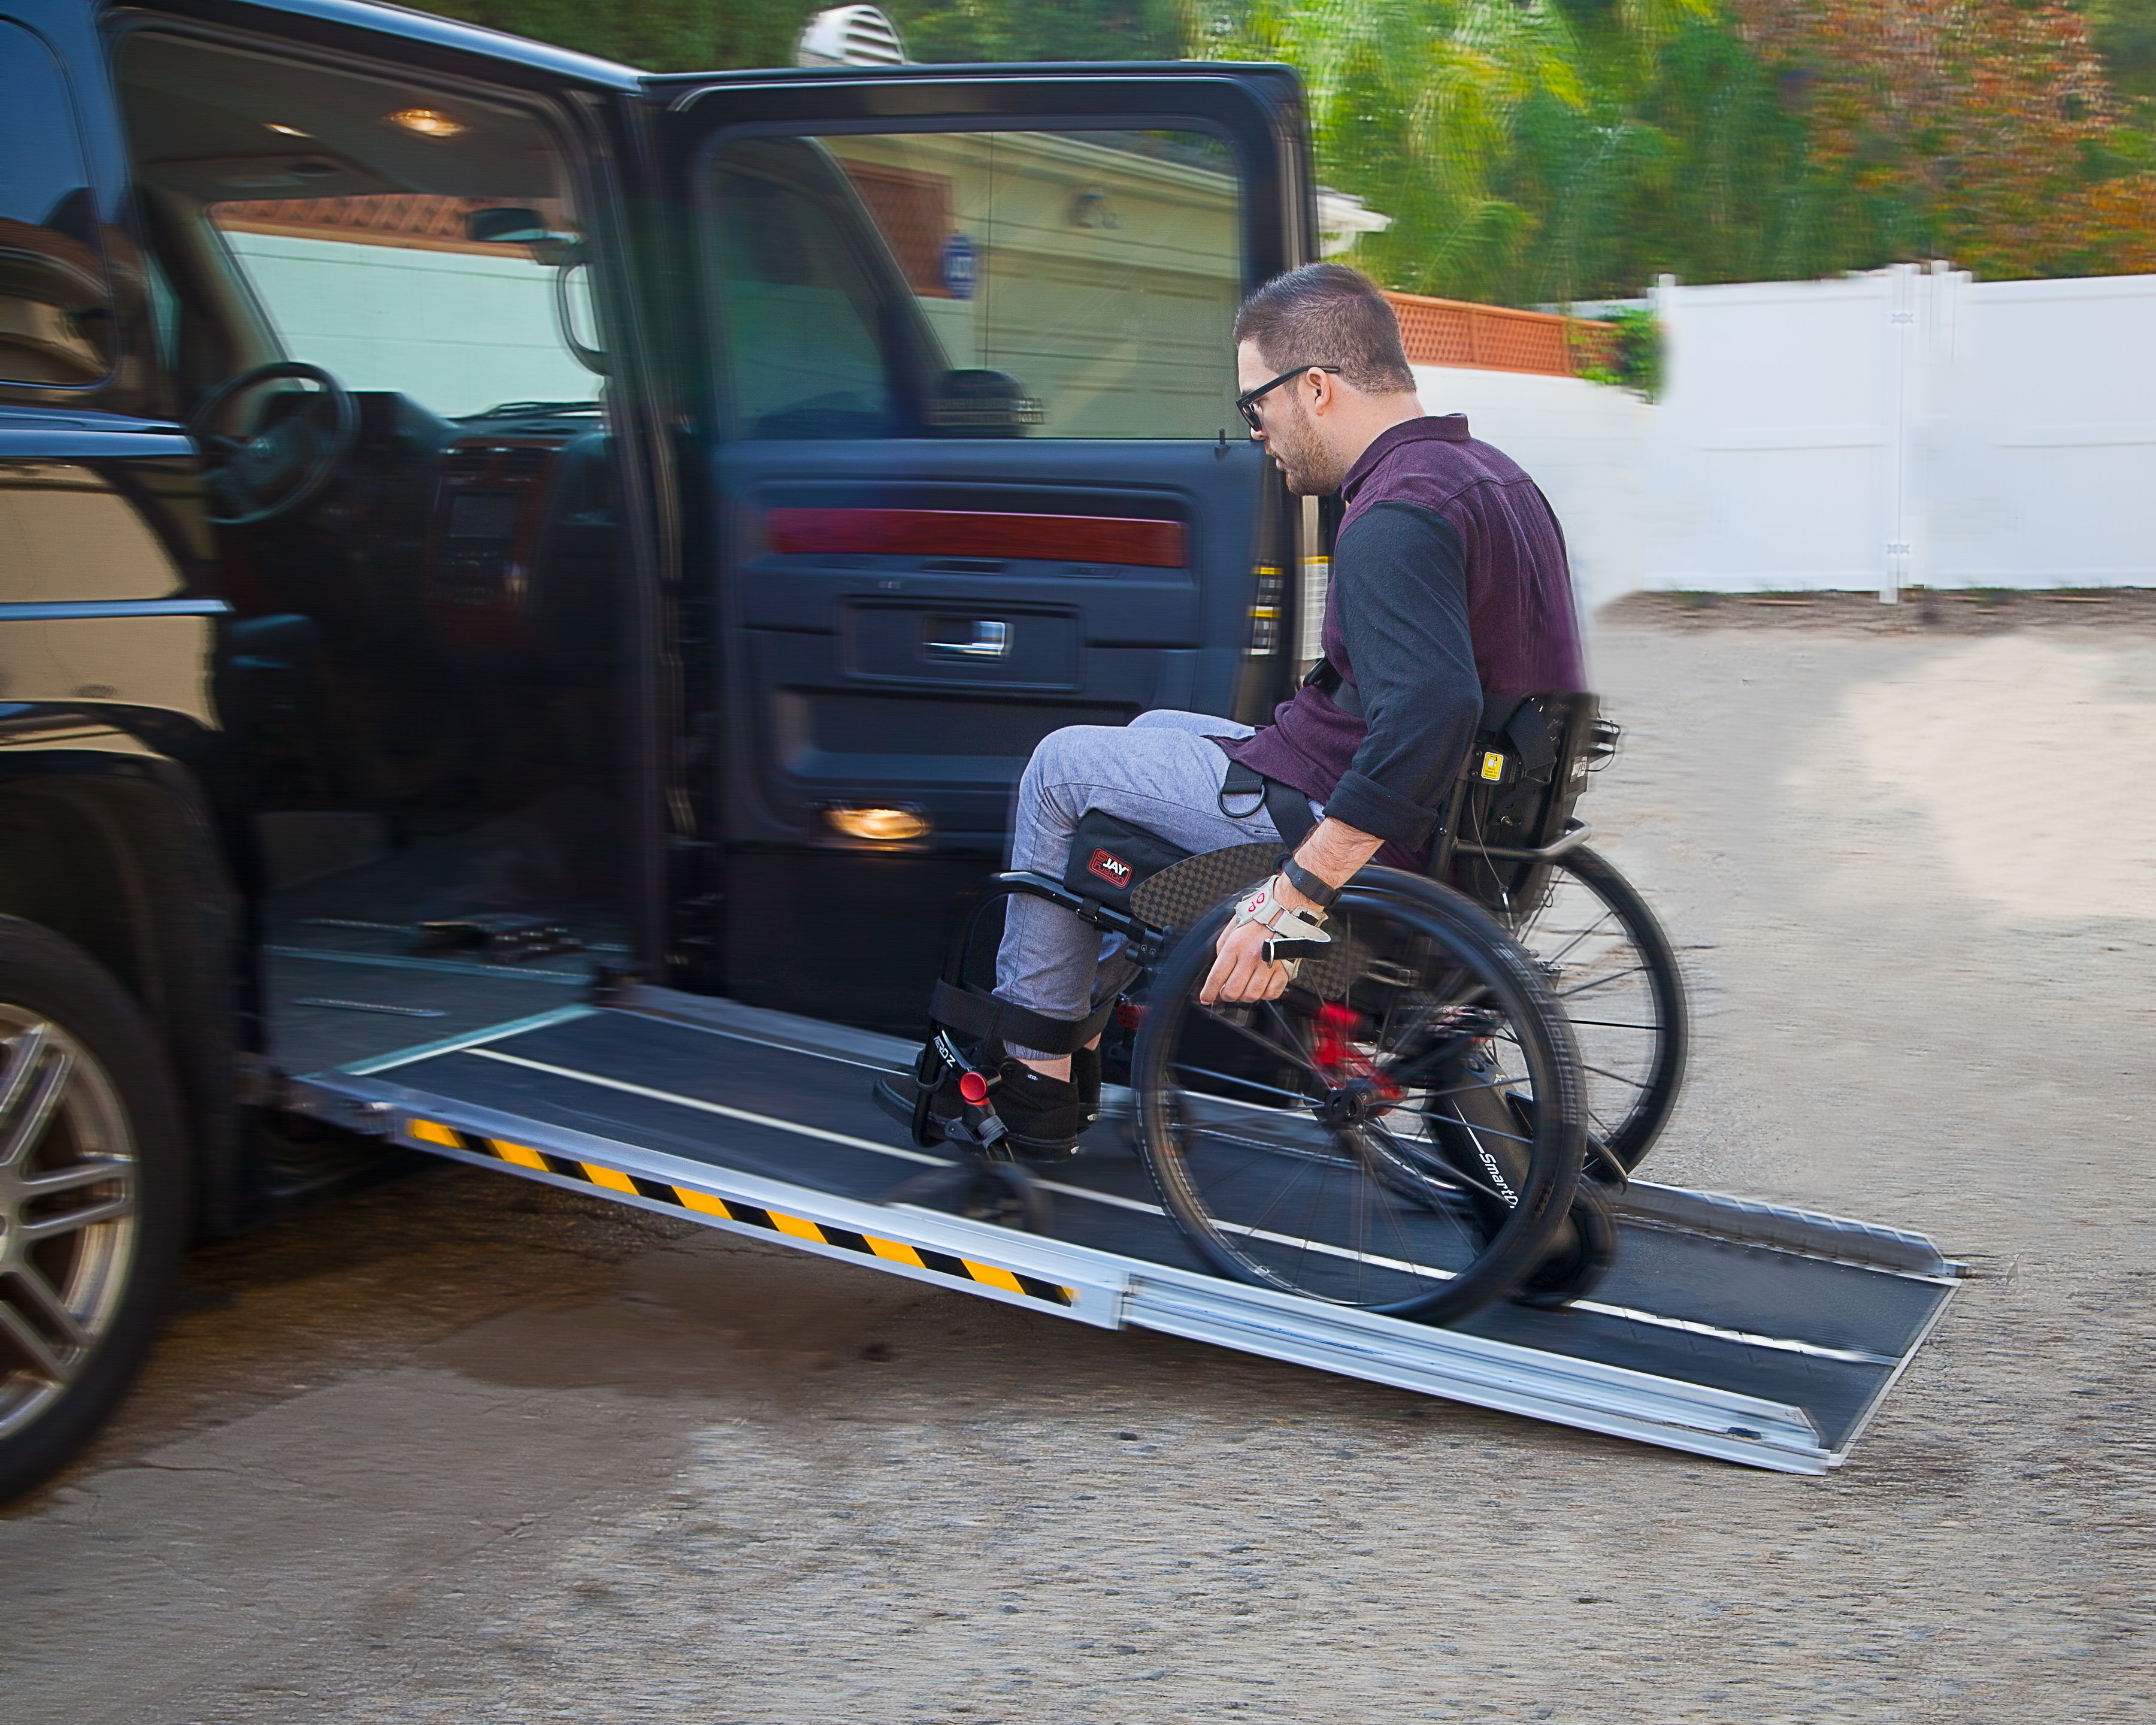 A disabled man rides his smart drive wheelchair to get into the car.